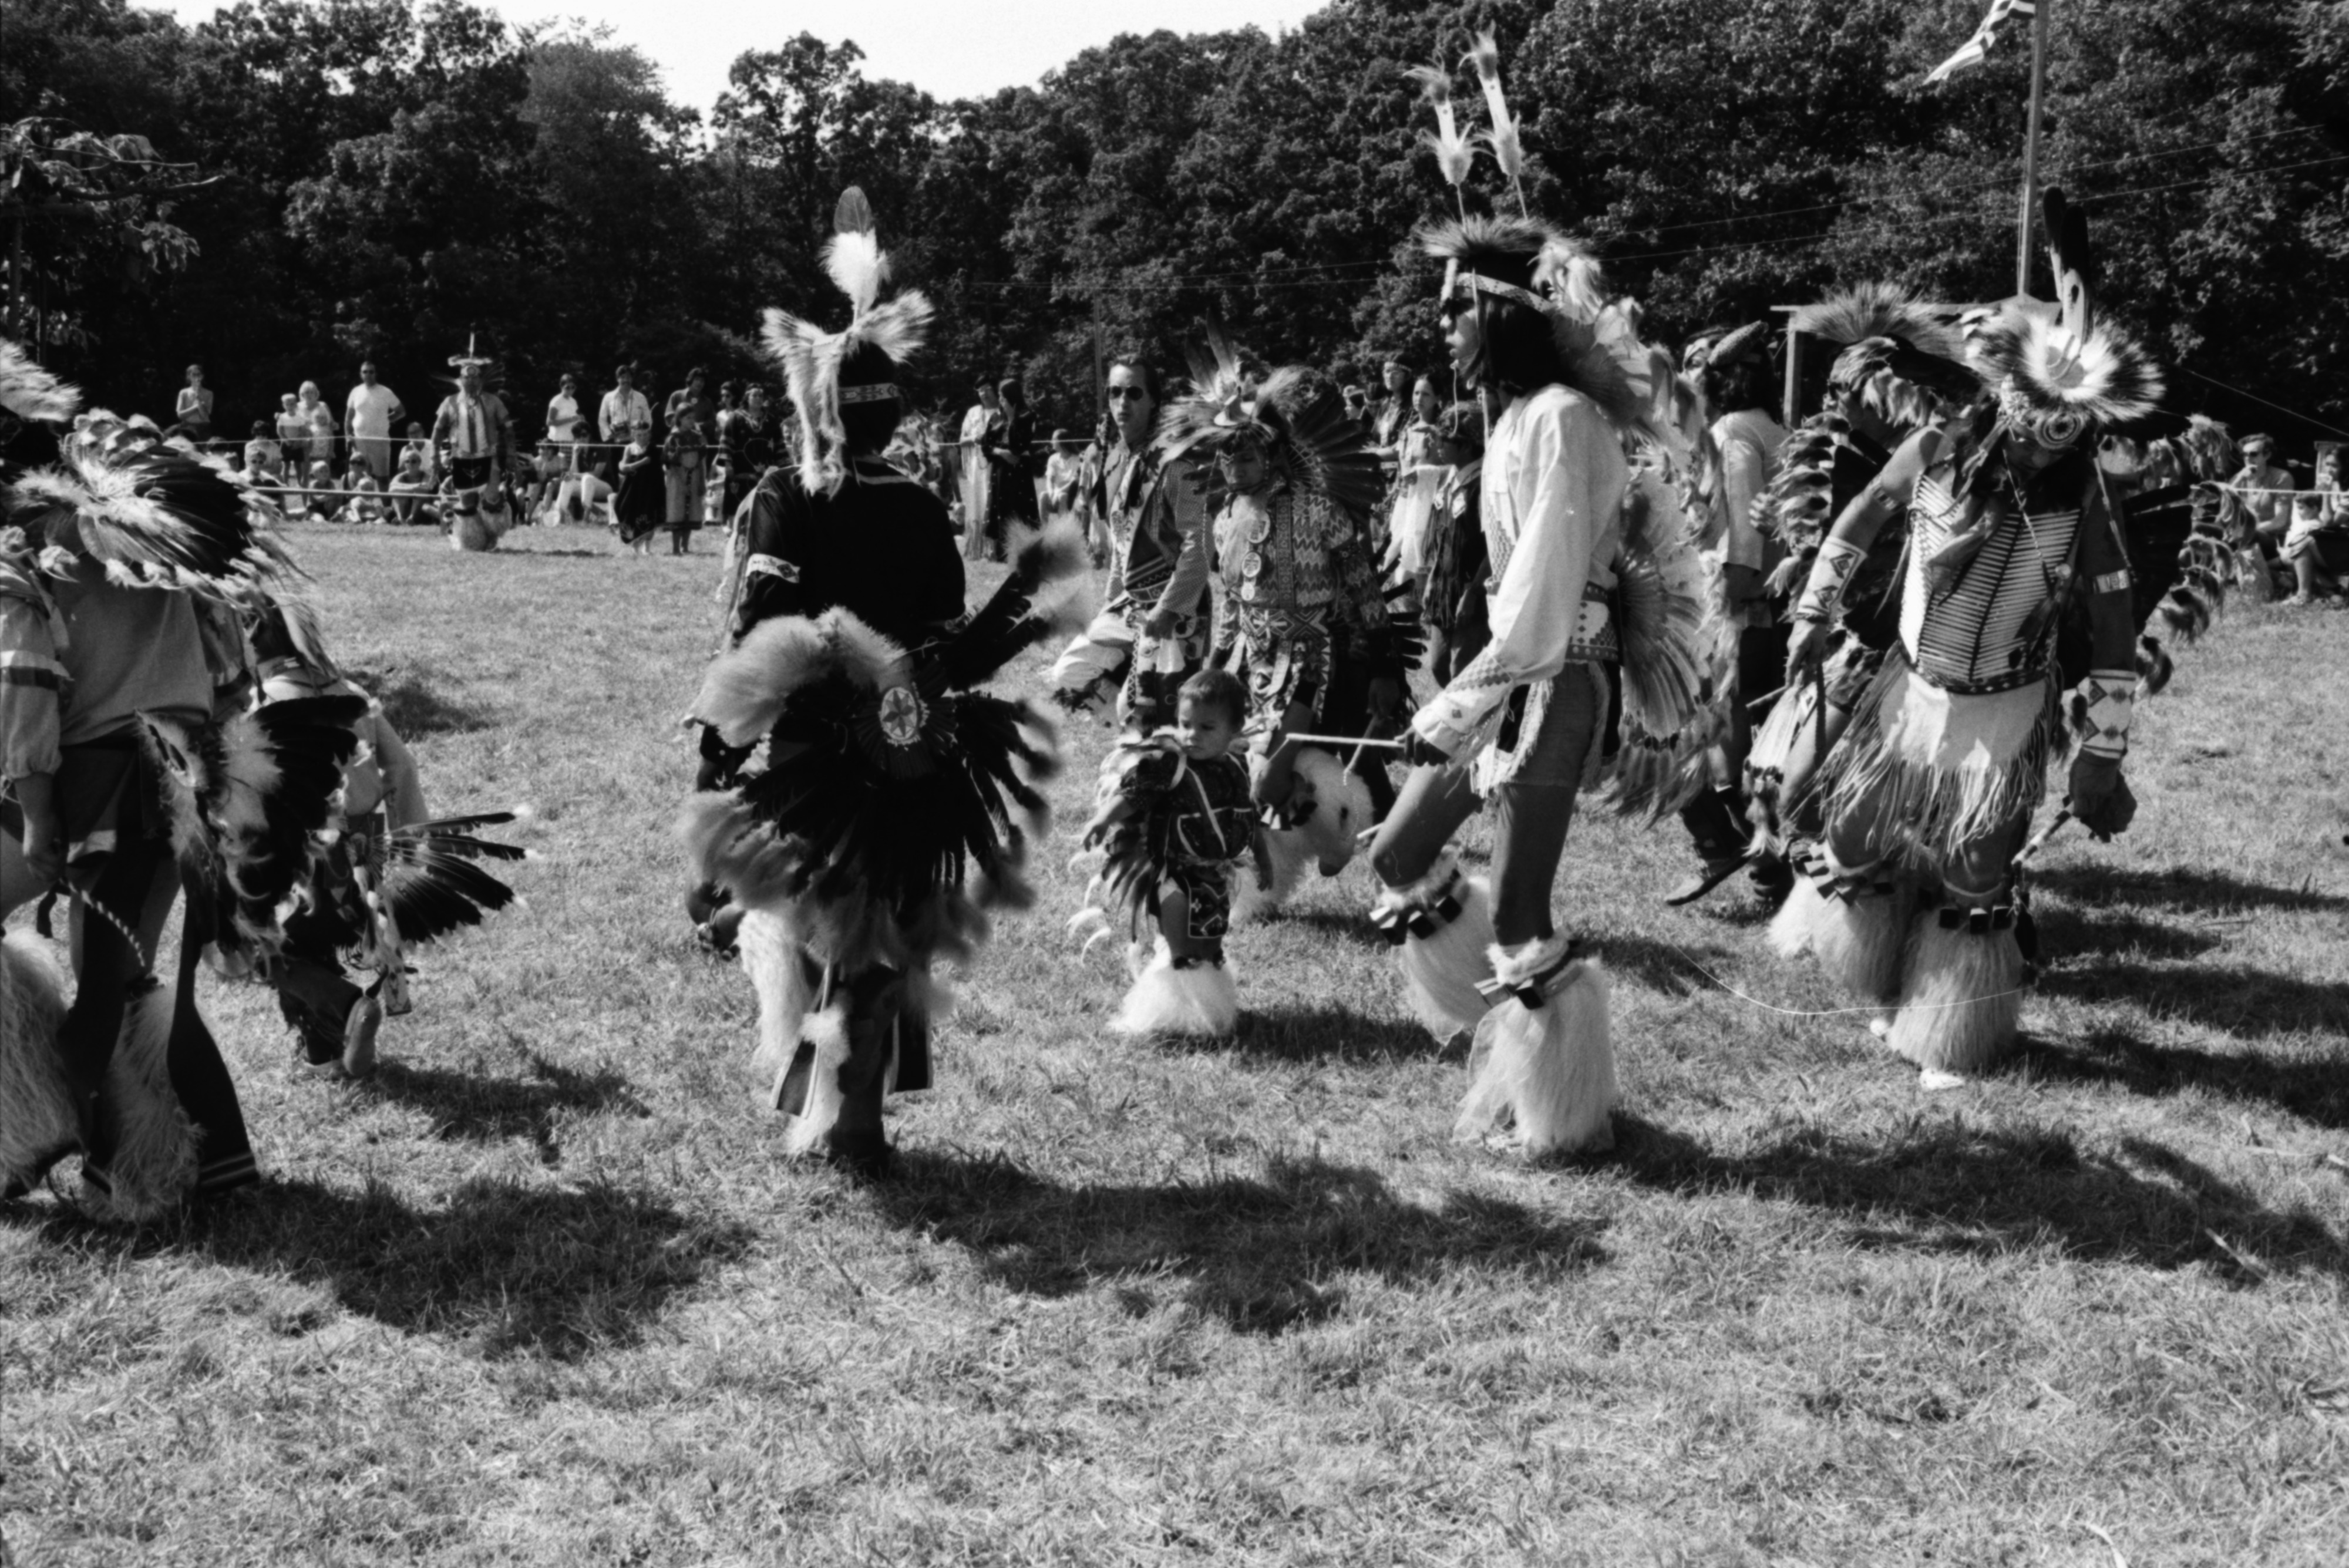 Annual Powwow sponsored by American Indians Unlimited (AIU), at Knights of Columbus Park, August 1972 image